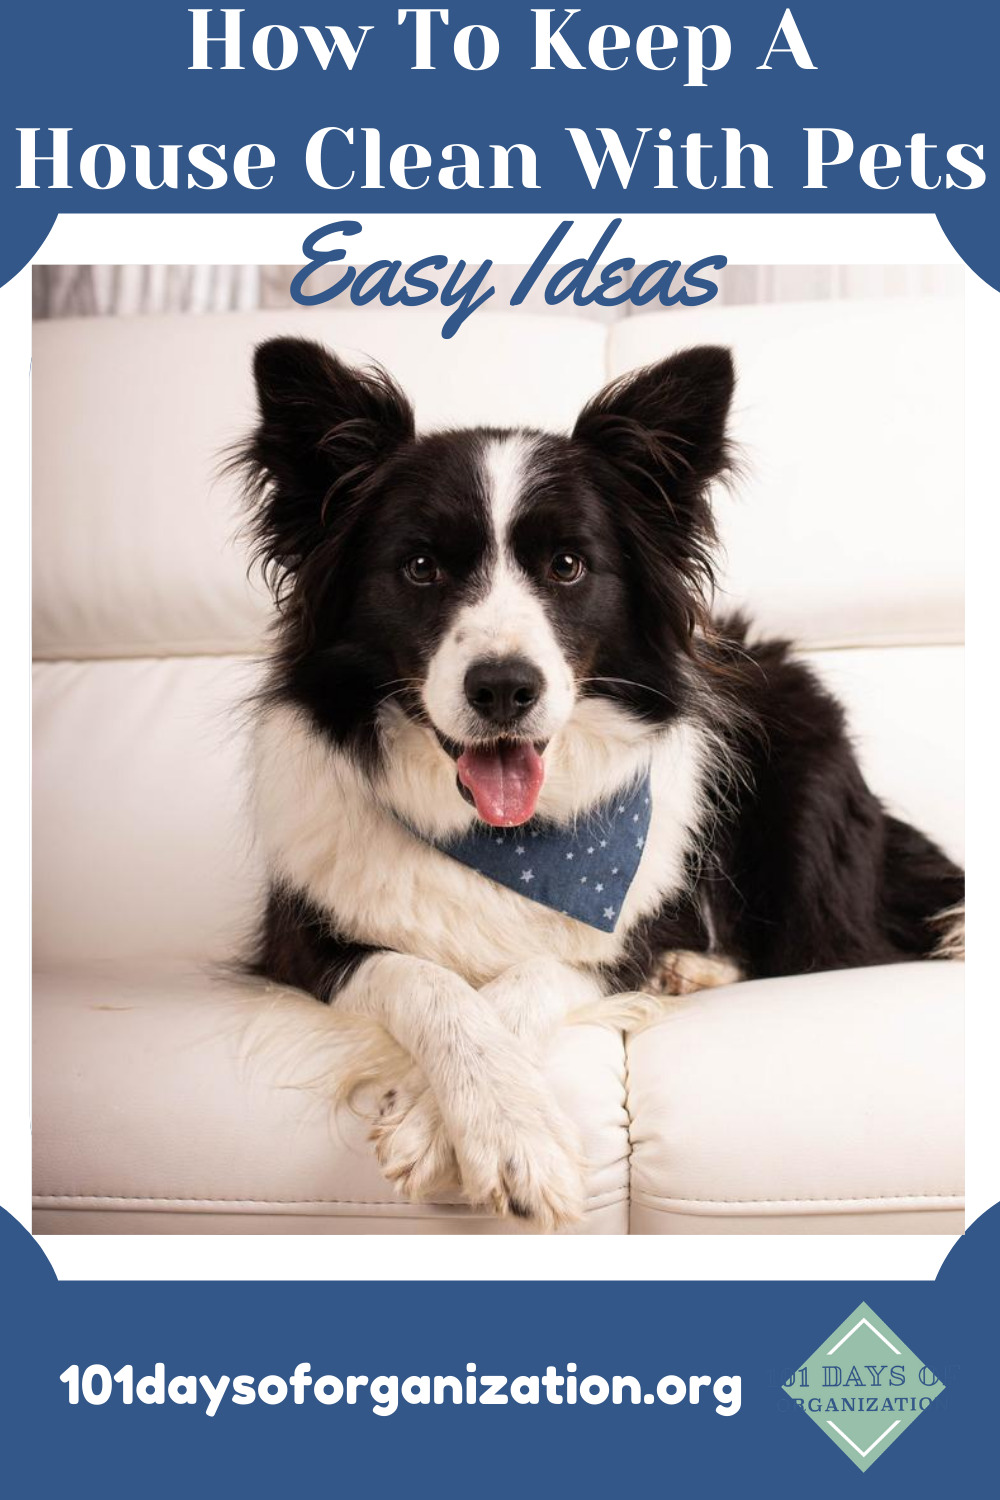 How to keep a house clean with pets! If you have pets, you know that they are notorious for messes that you have to clean up. Stay ahead of the game with these helpful tips and tricks to keep the house clean in spite of your pets! #101daysoforganizationblog #howtokeepahousecleanwithpets